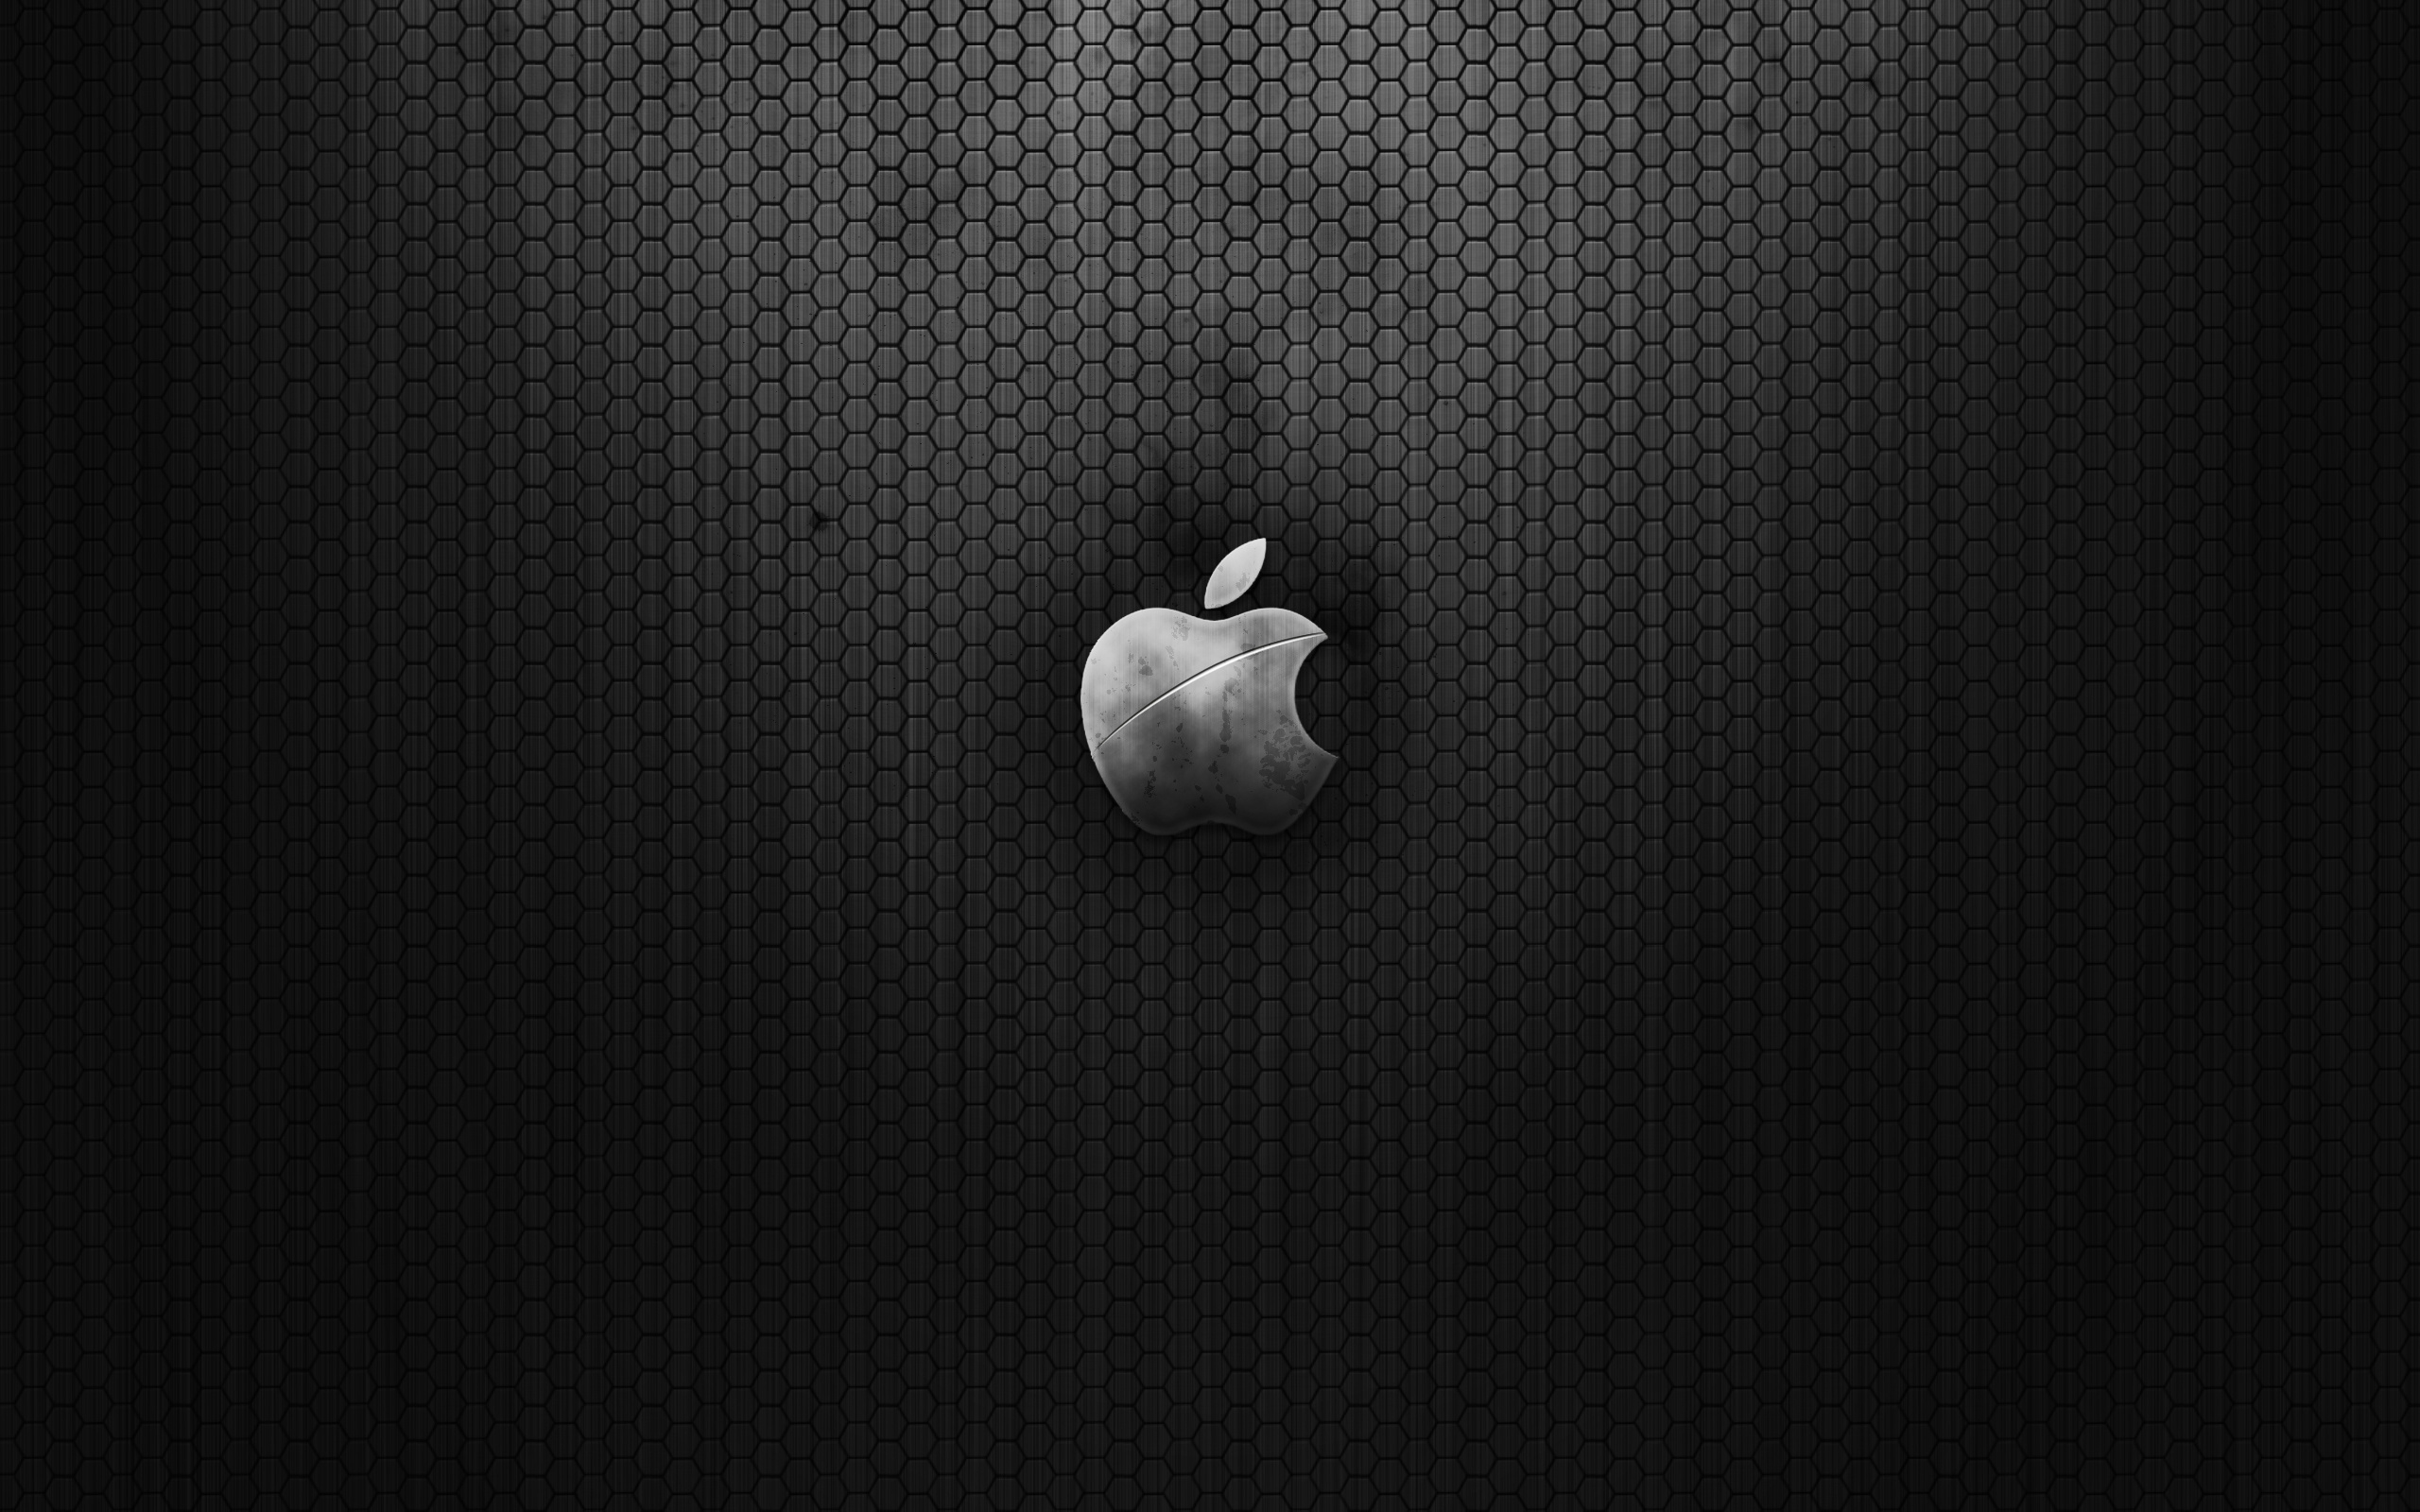 Apple metal wallpaper, metal, iron, texture, download photo